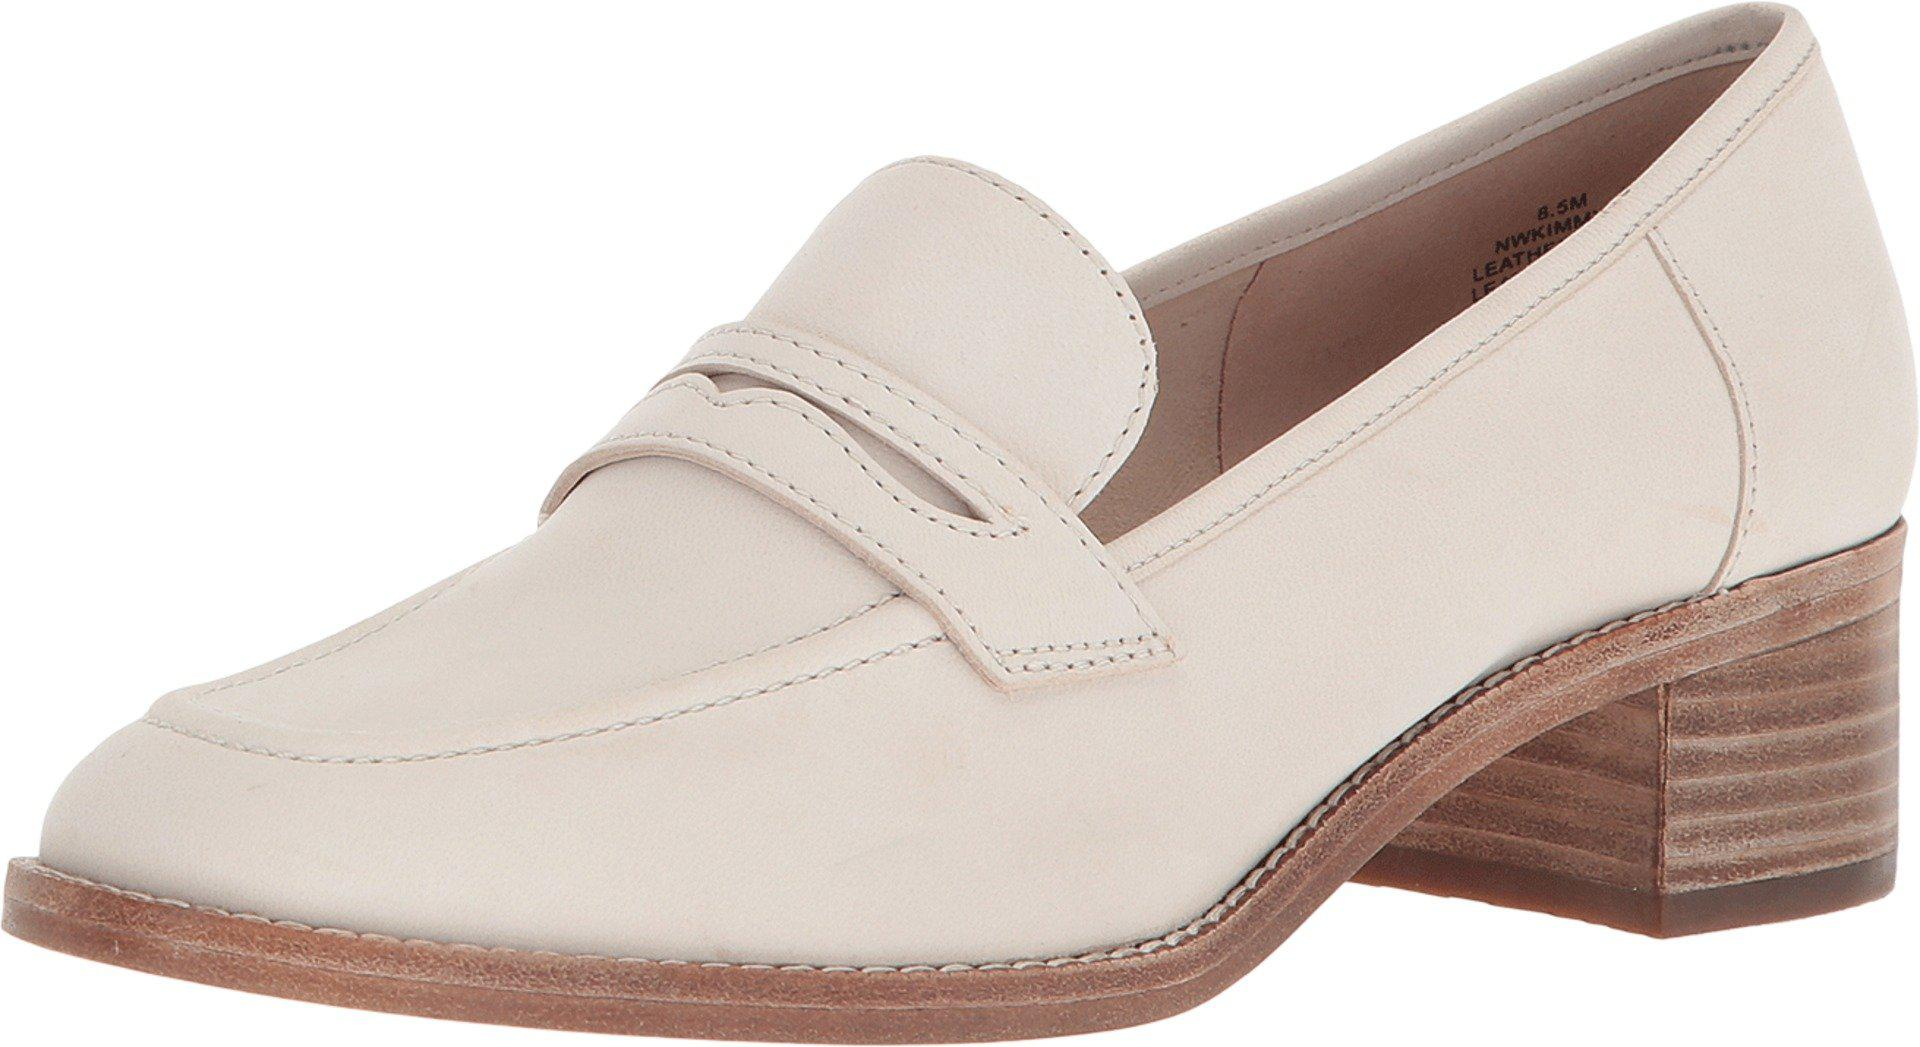 248671aa644 Lyst - Nine West Kimmy 40th Anniversary Heeled Loafer